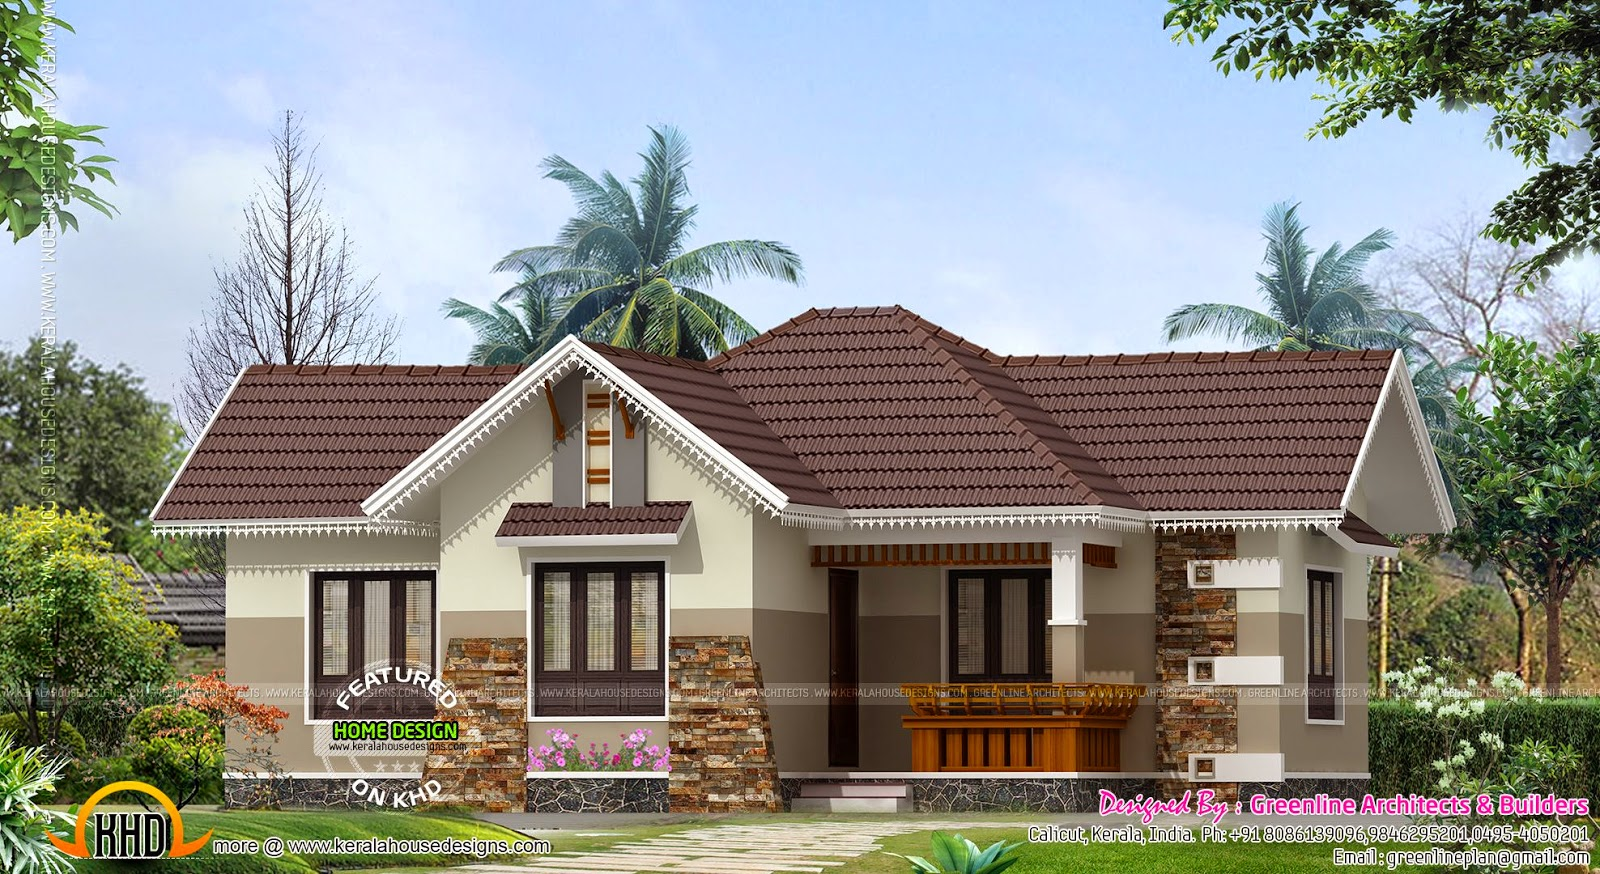 Exterior design small houses india front design Indian small house exterior design